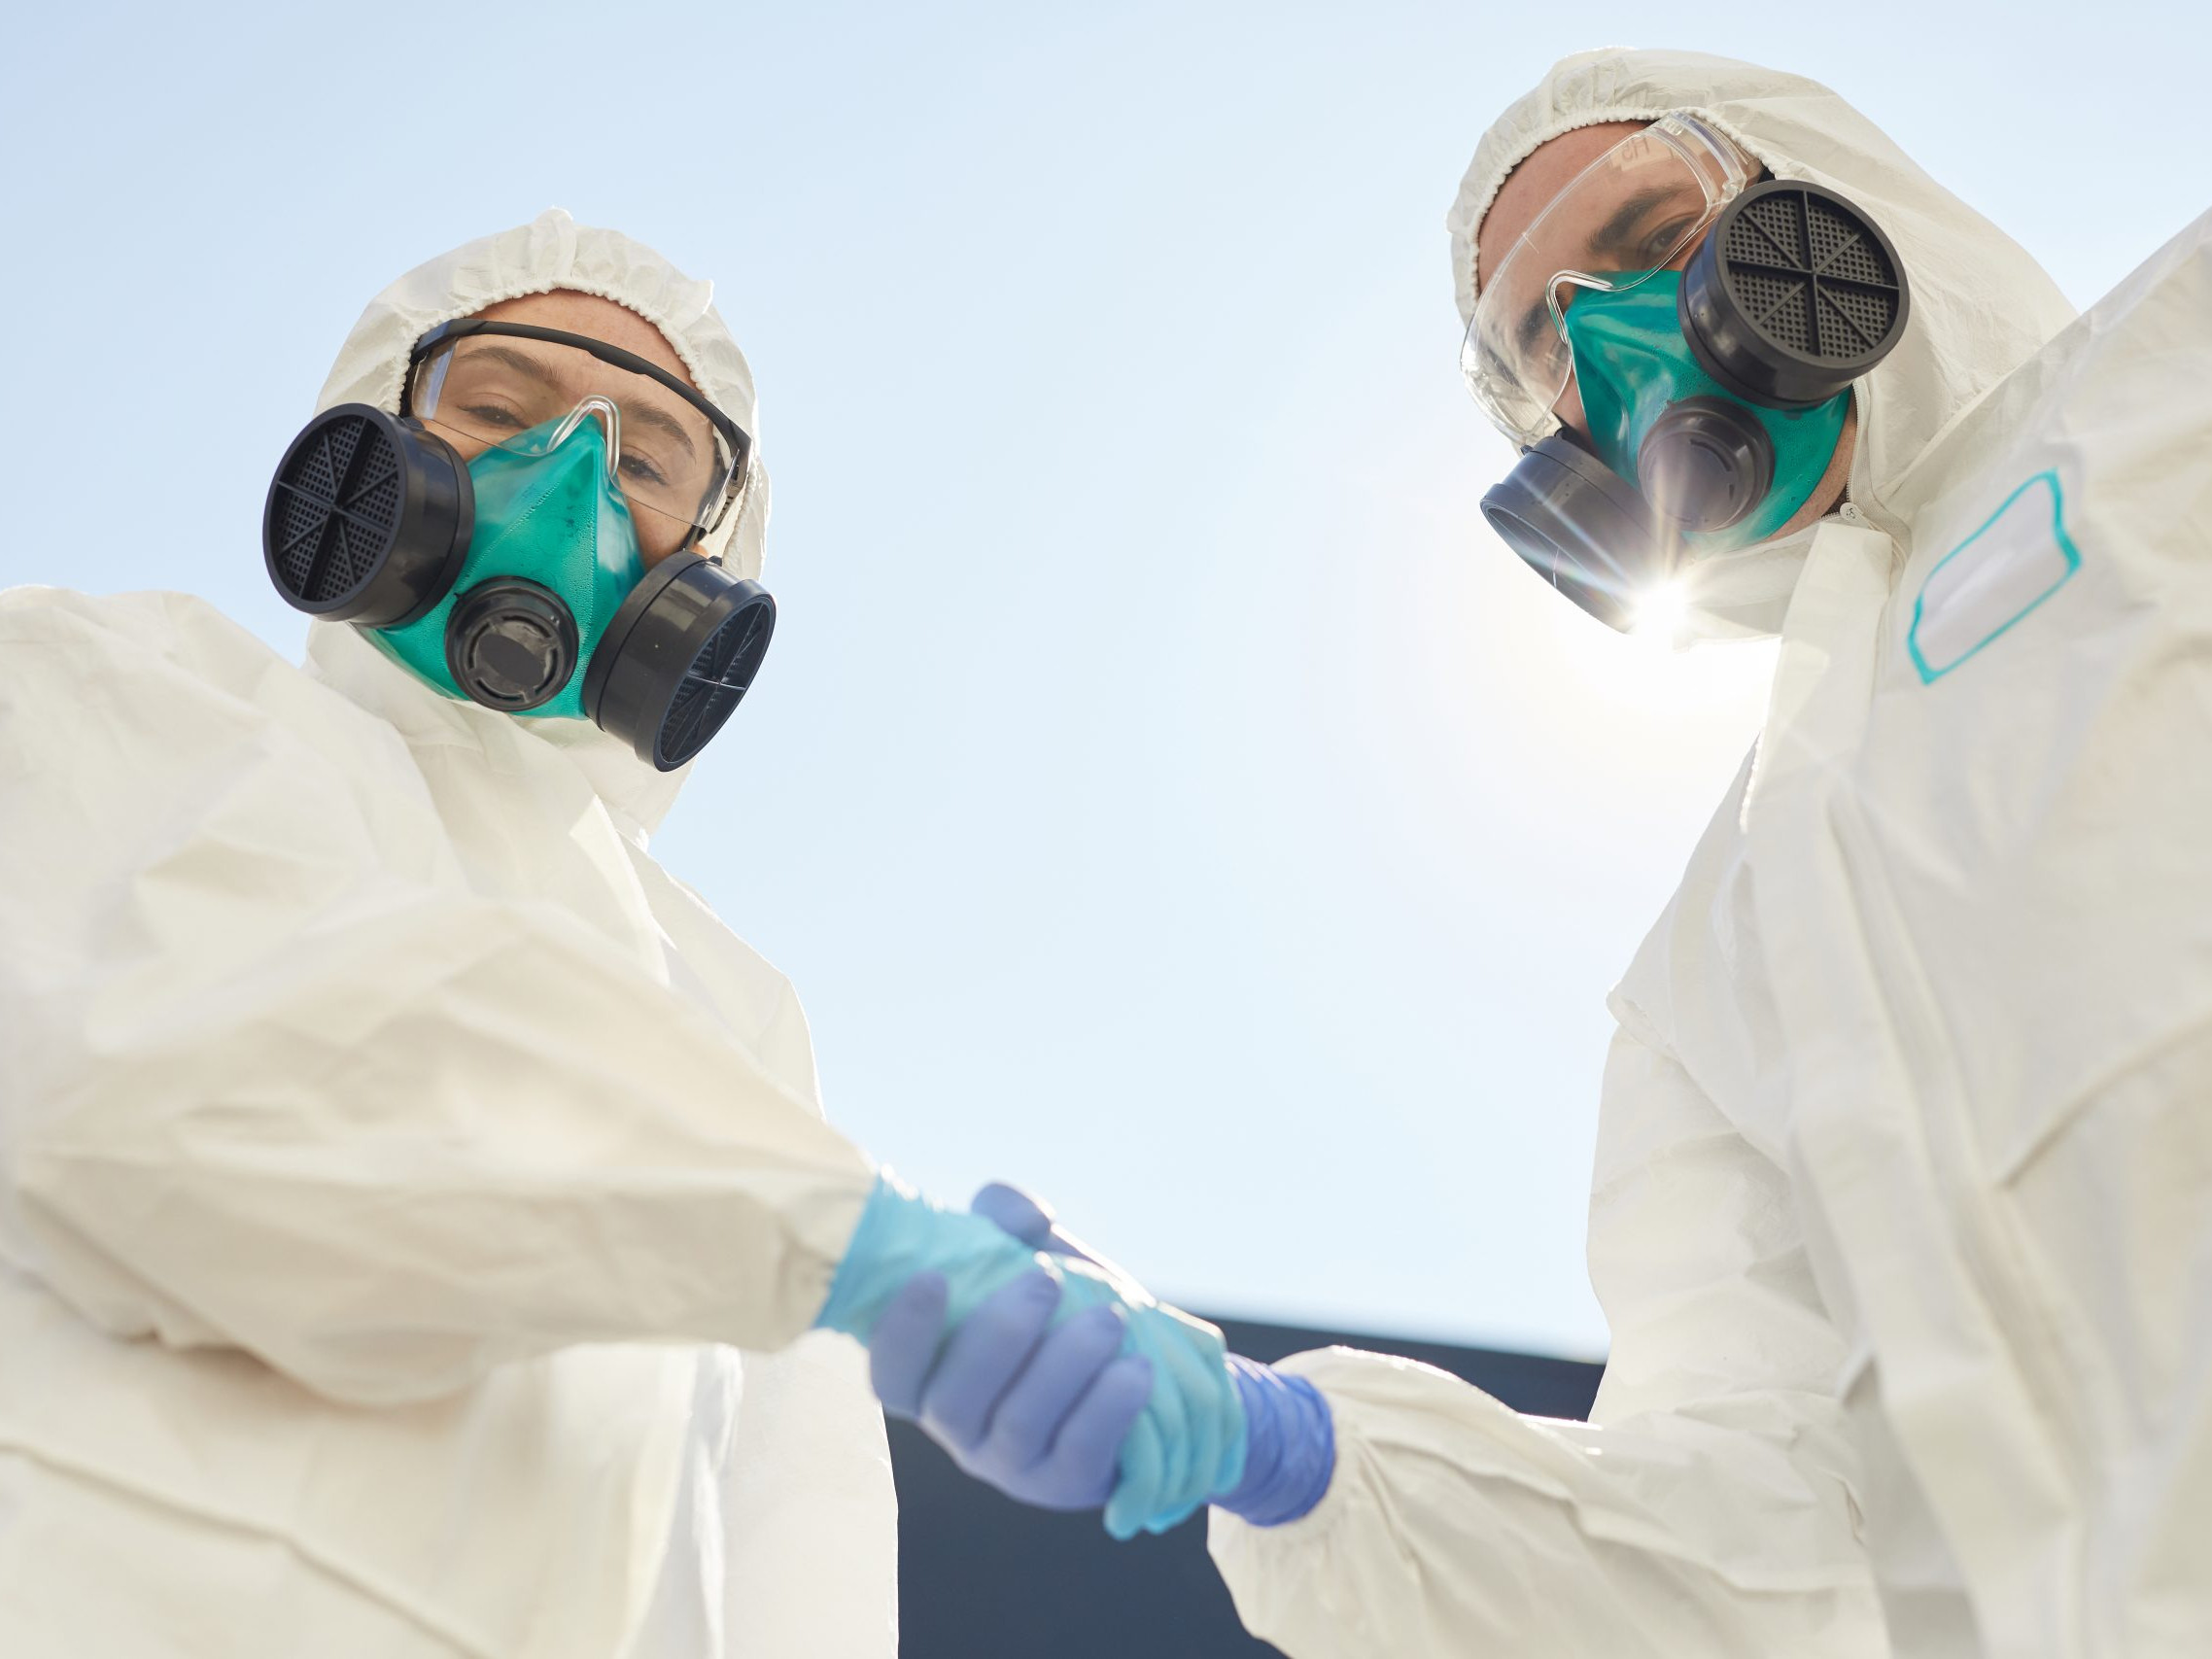 Two Disinfection Workers Shaking Hands